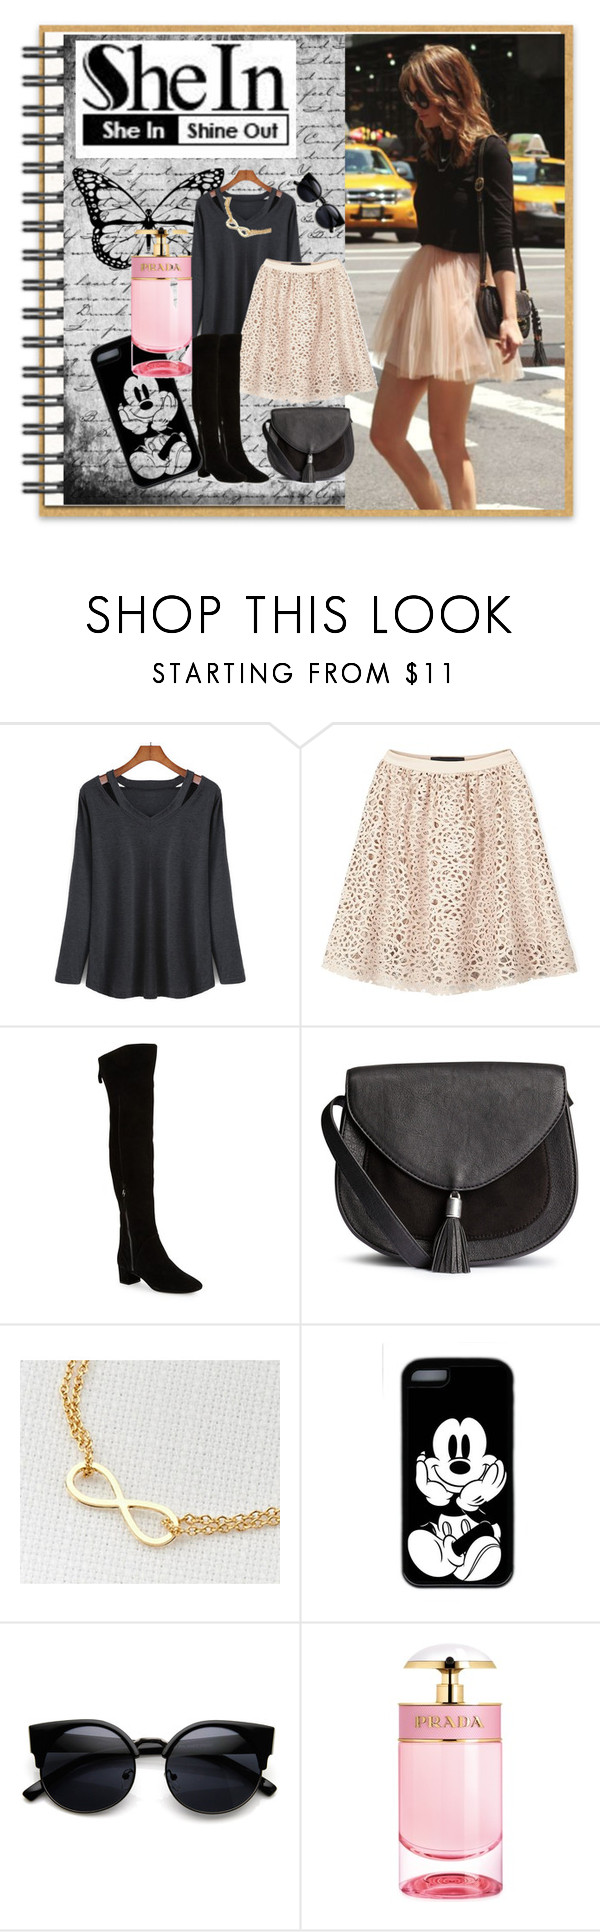 """""""SheIn"""" by bamra ❤ liked on Polyvore featuring Karl Lagerfeld, Nine West, Prada, women's clothing, women's fashion, women, female, woman, misses and juniors"""